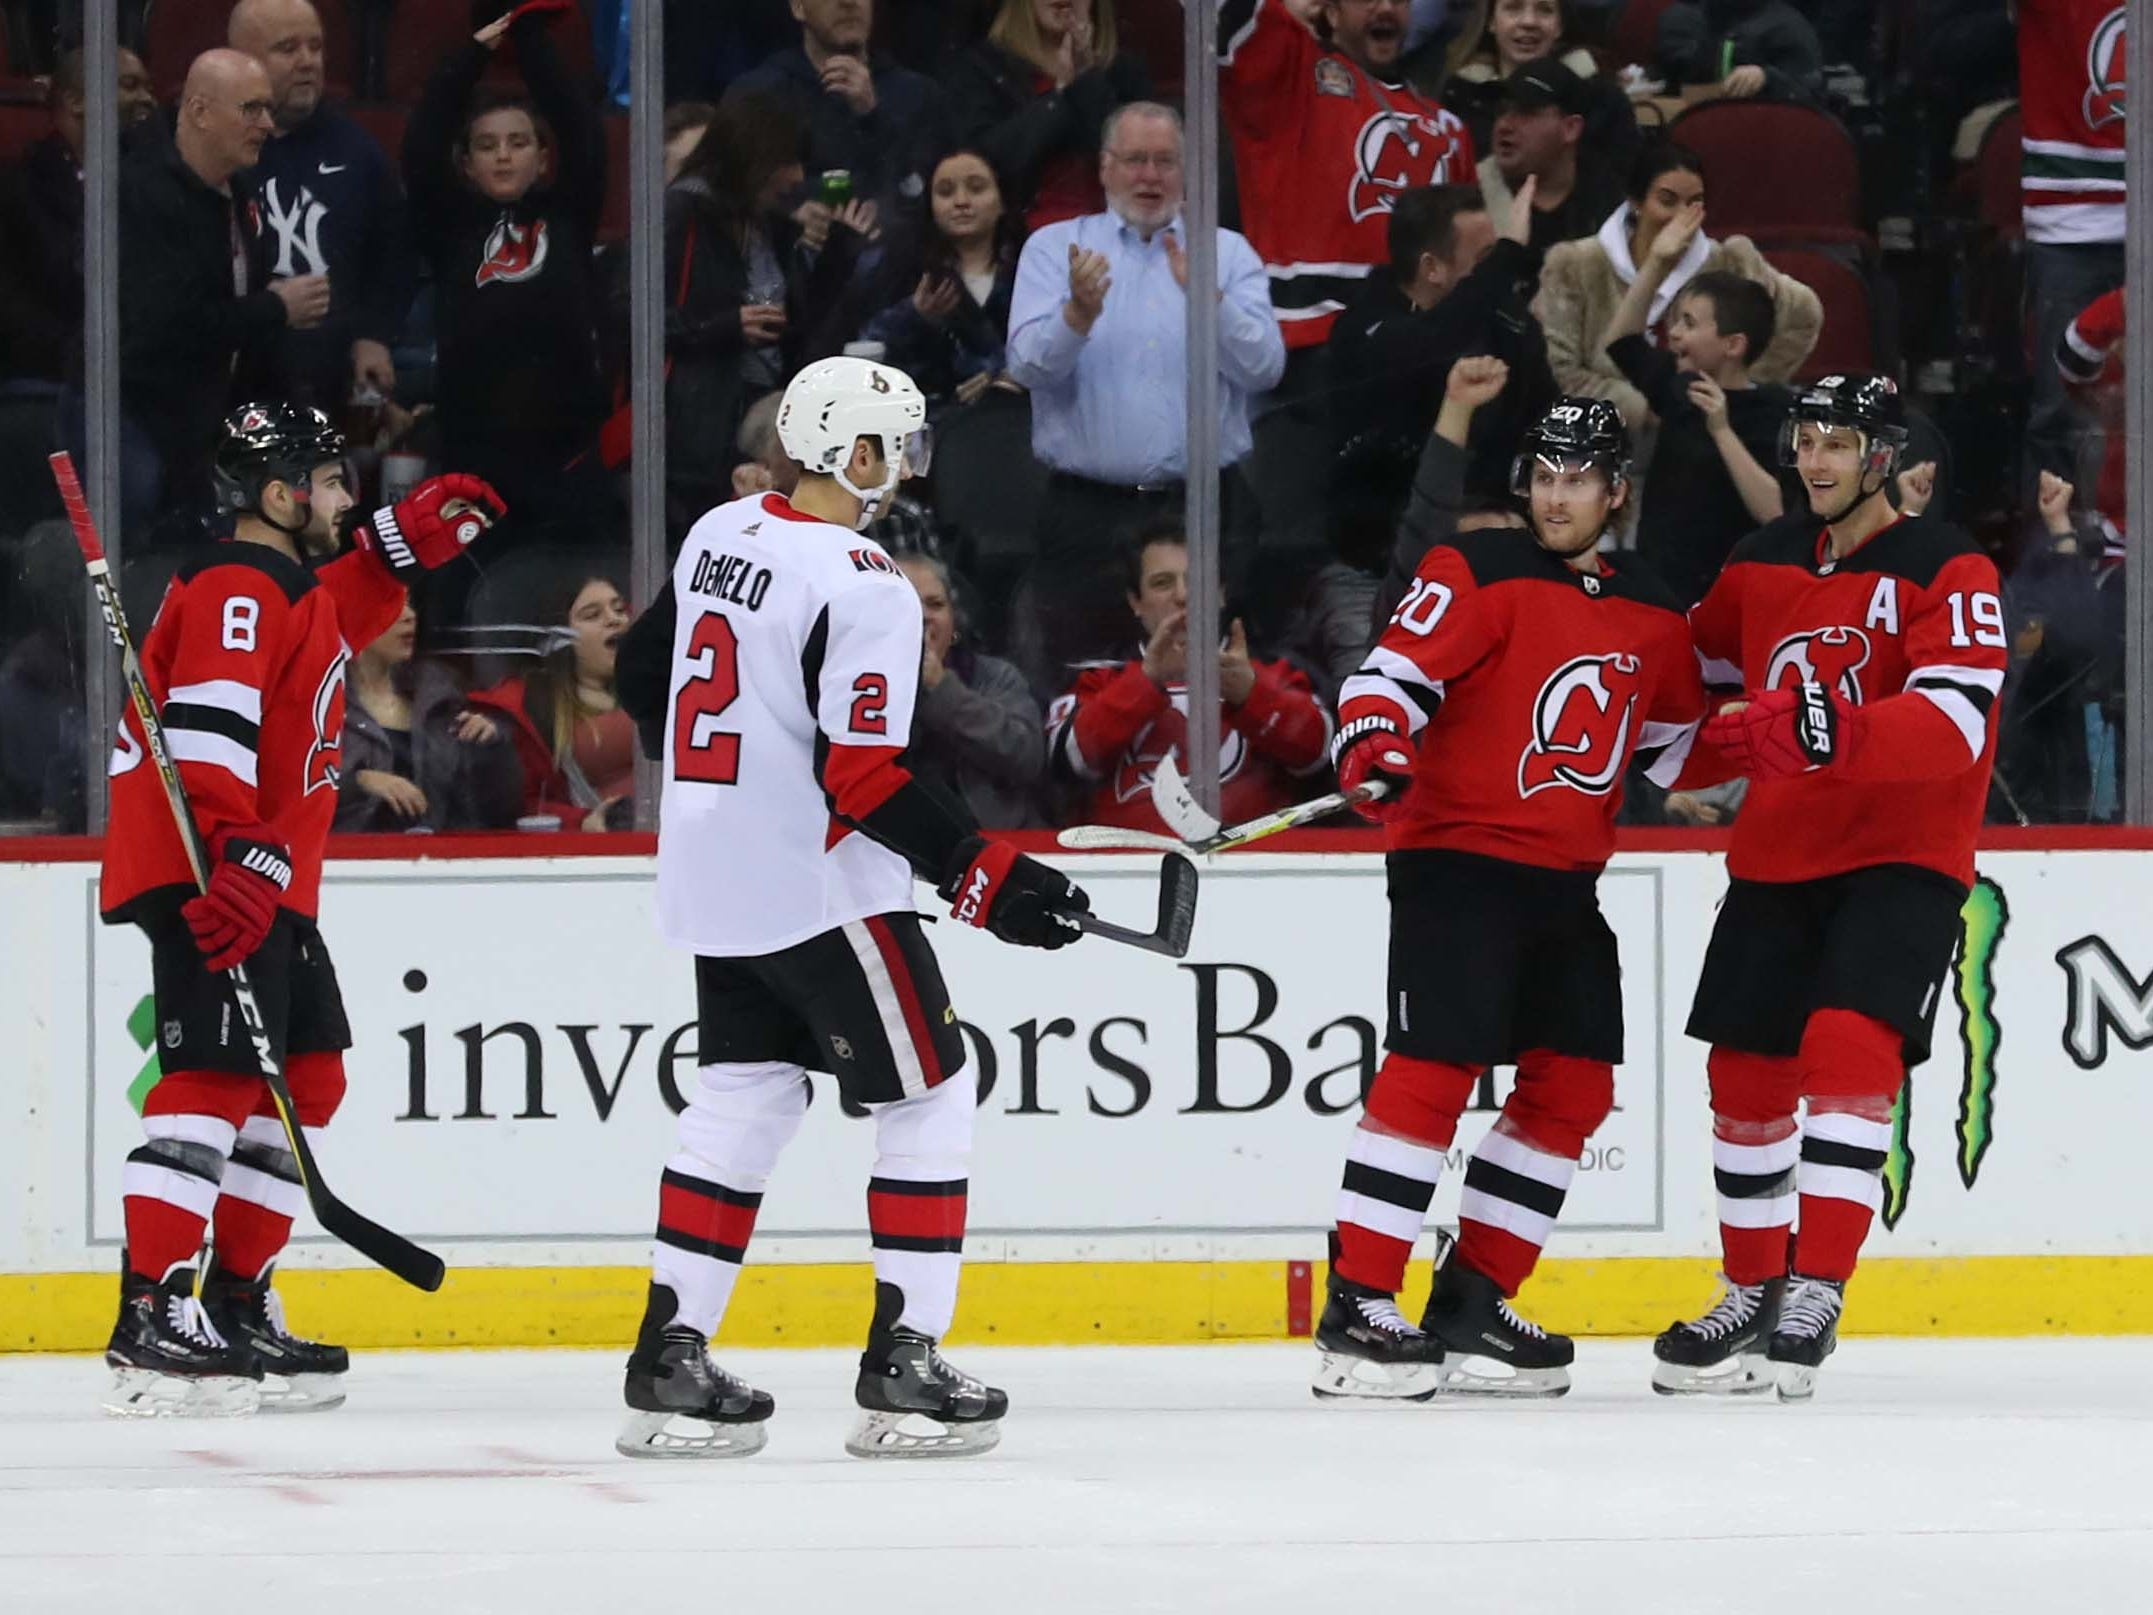 Feb 21, 2019; Newark, NJ, USA; The New Jersey Devils celebrate a goal by New Jersey Devils center Travis Zajac (19) during the first period at Prudential Center.